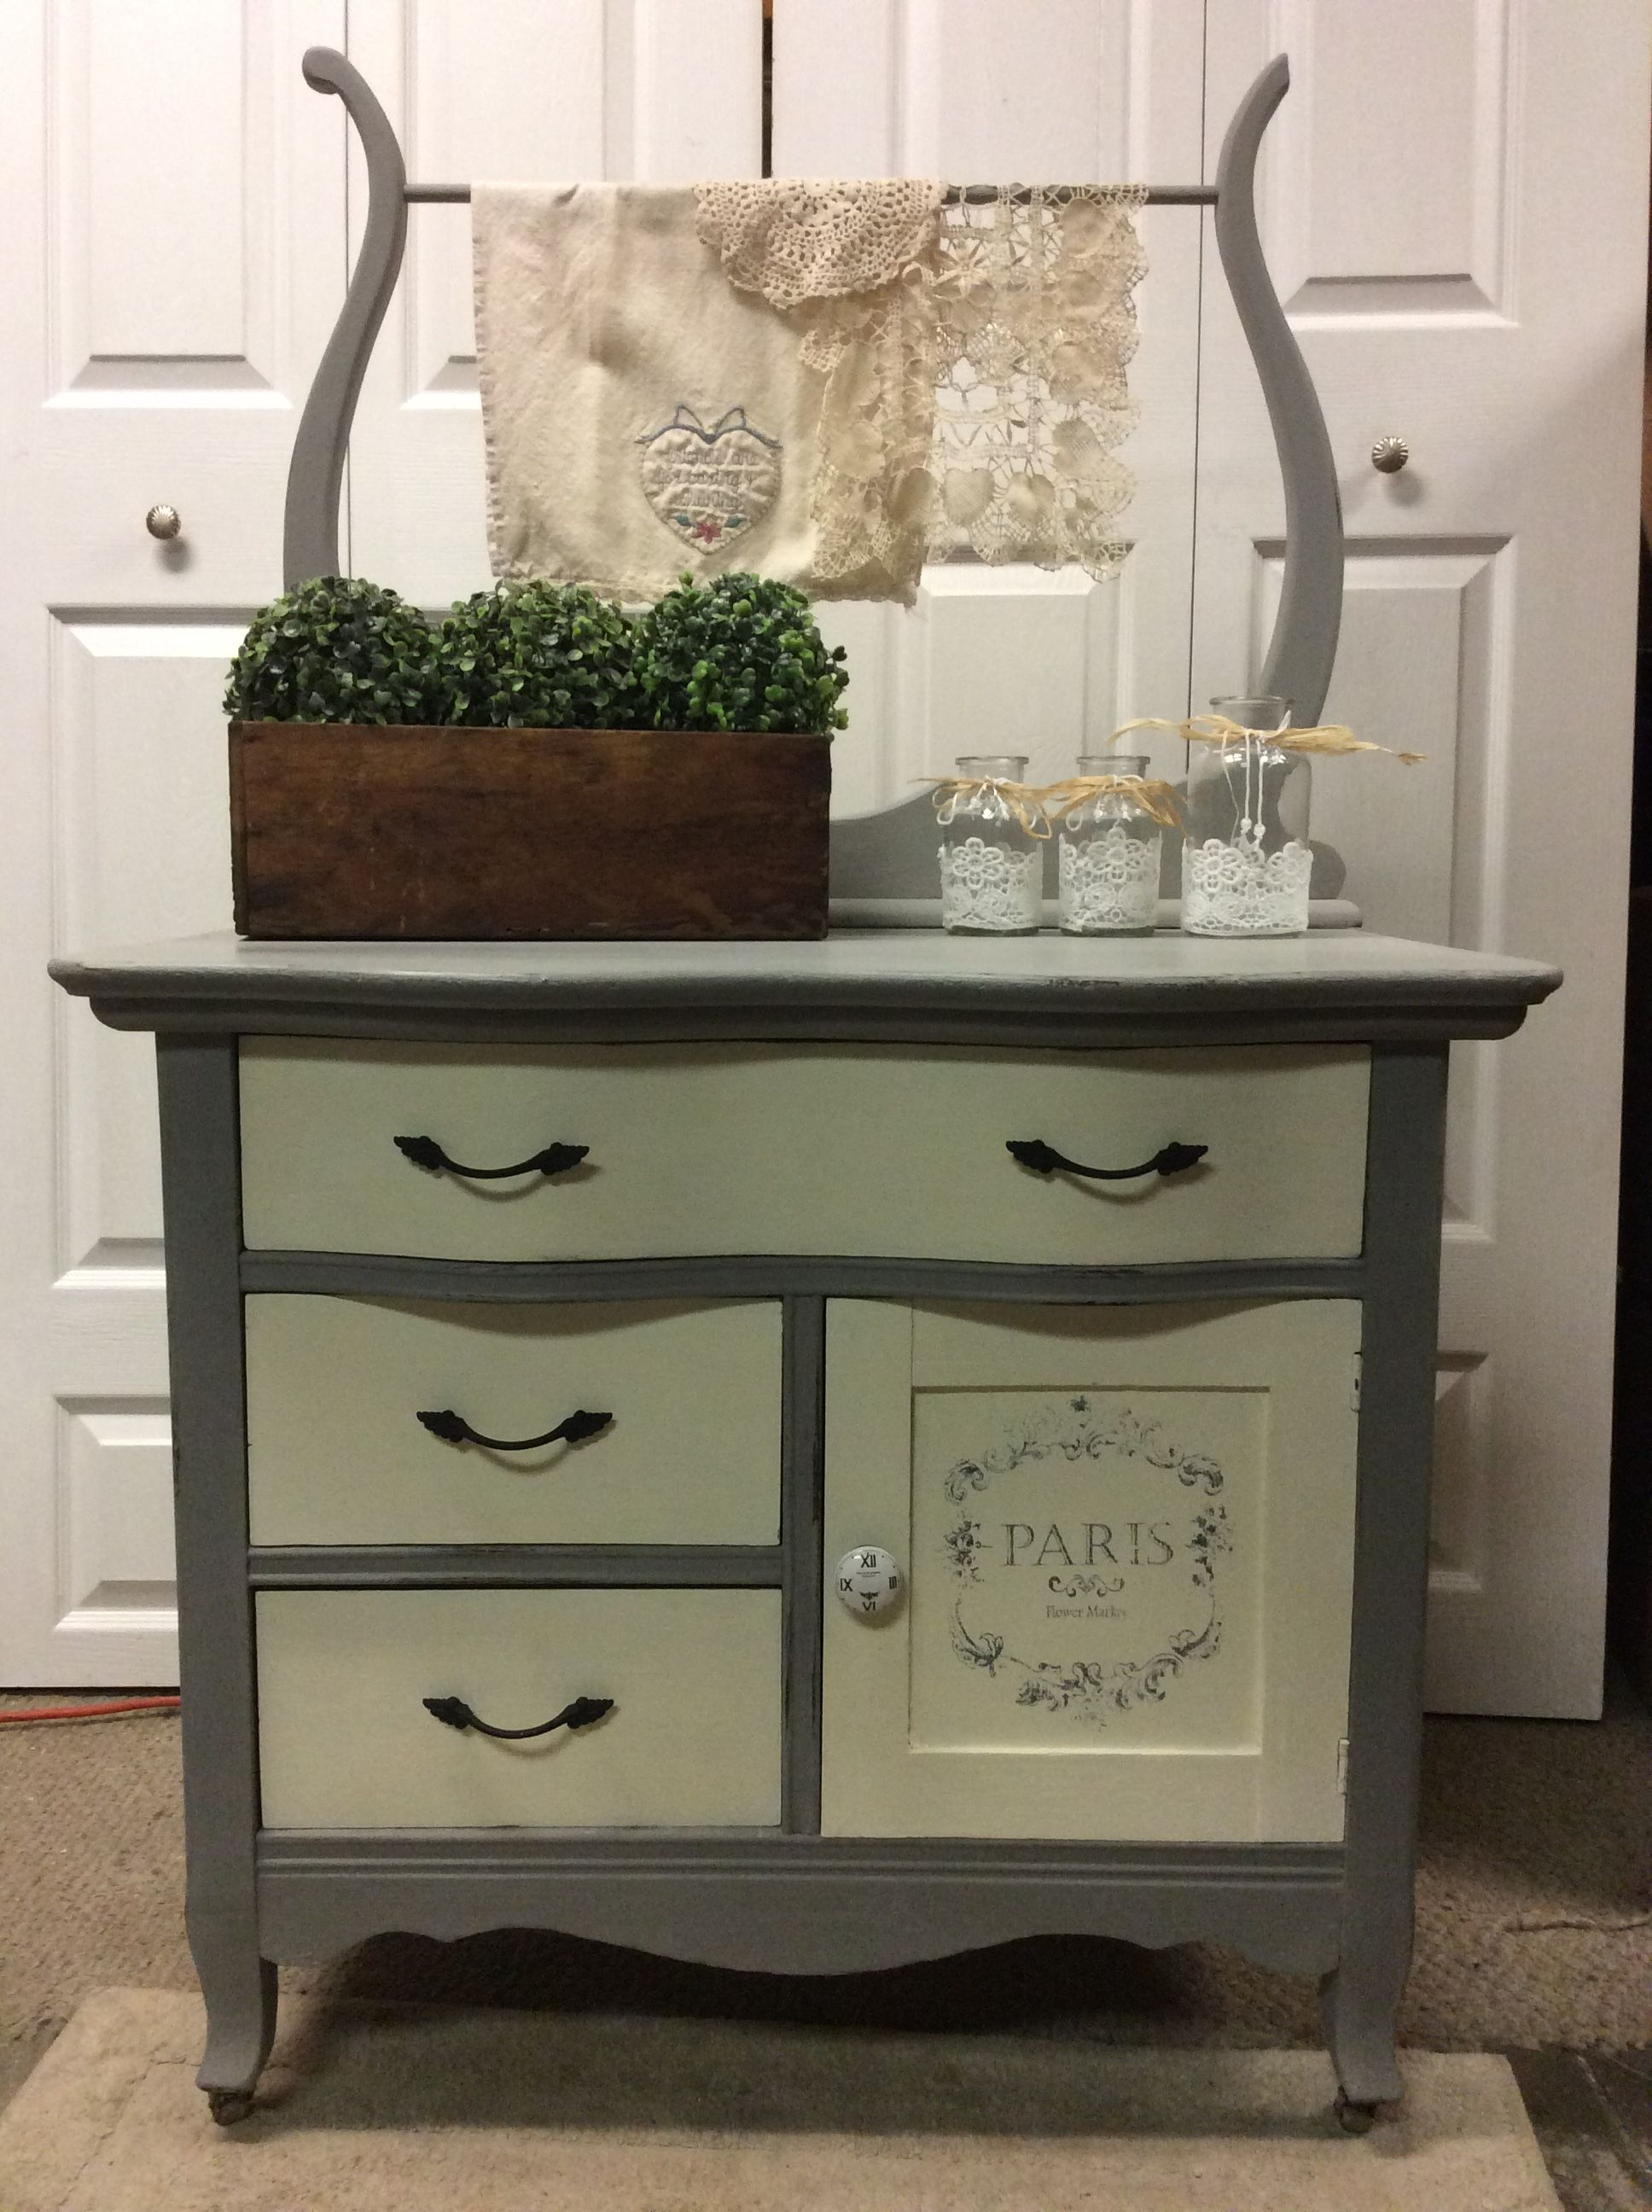 Chalk Painted Antique Washstand Rustic Painted Furniture Refinishing Furniture Rustic Furniture Diy